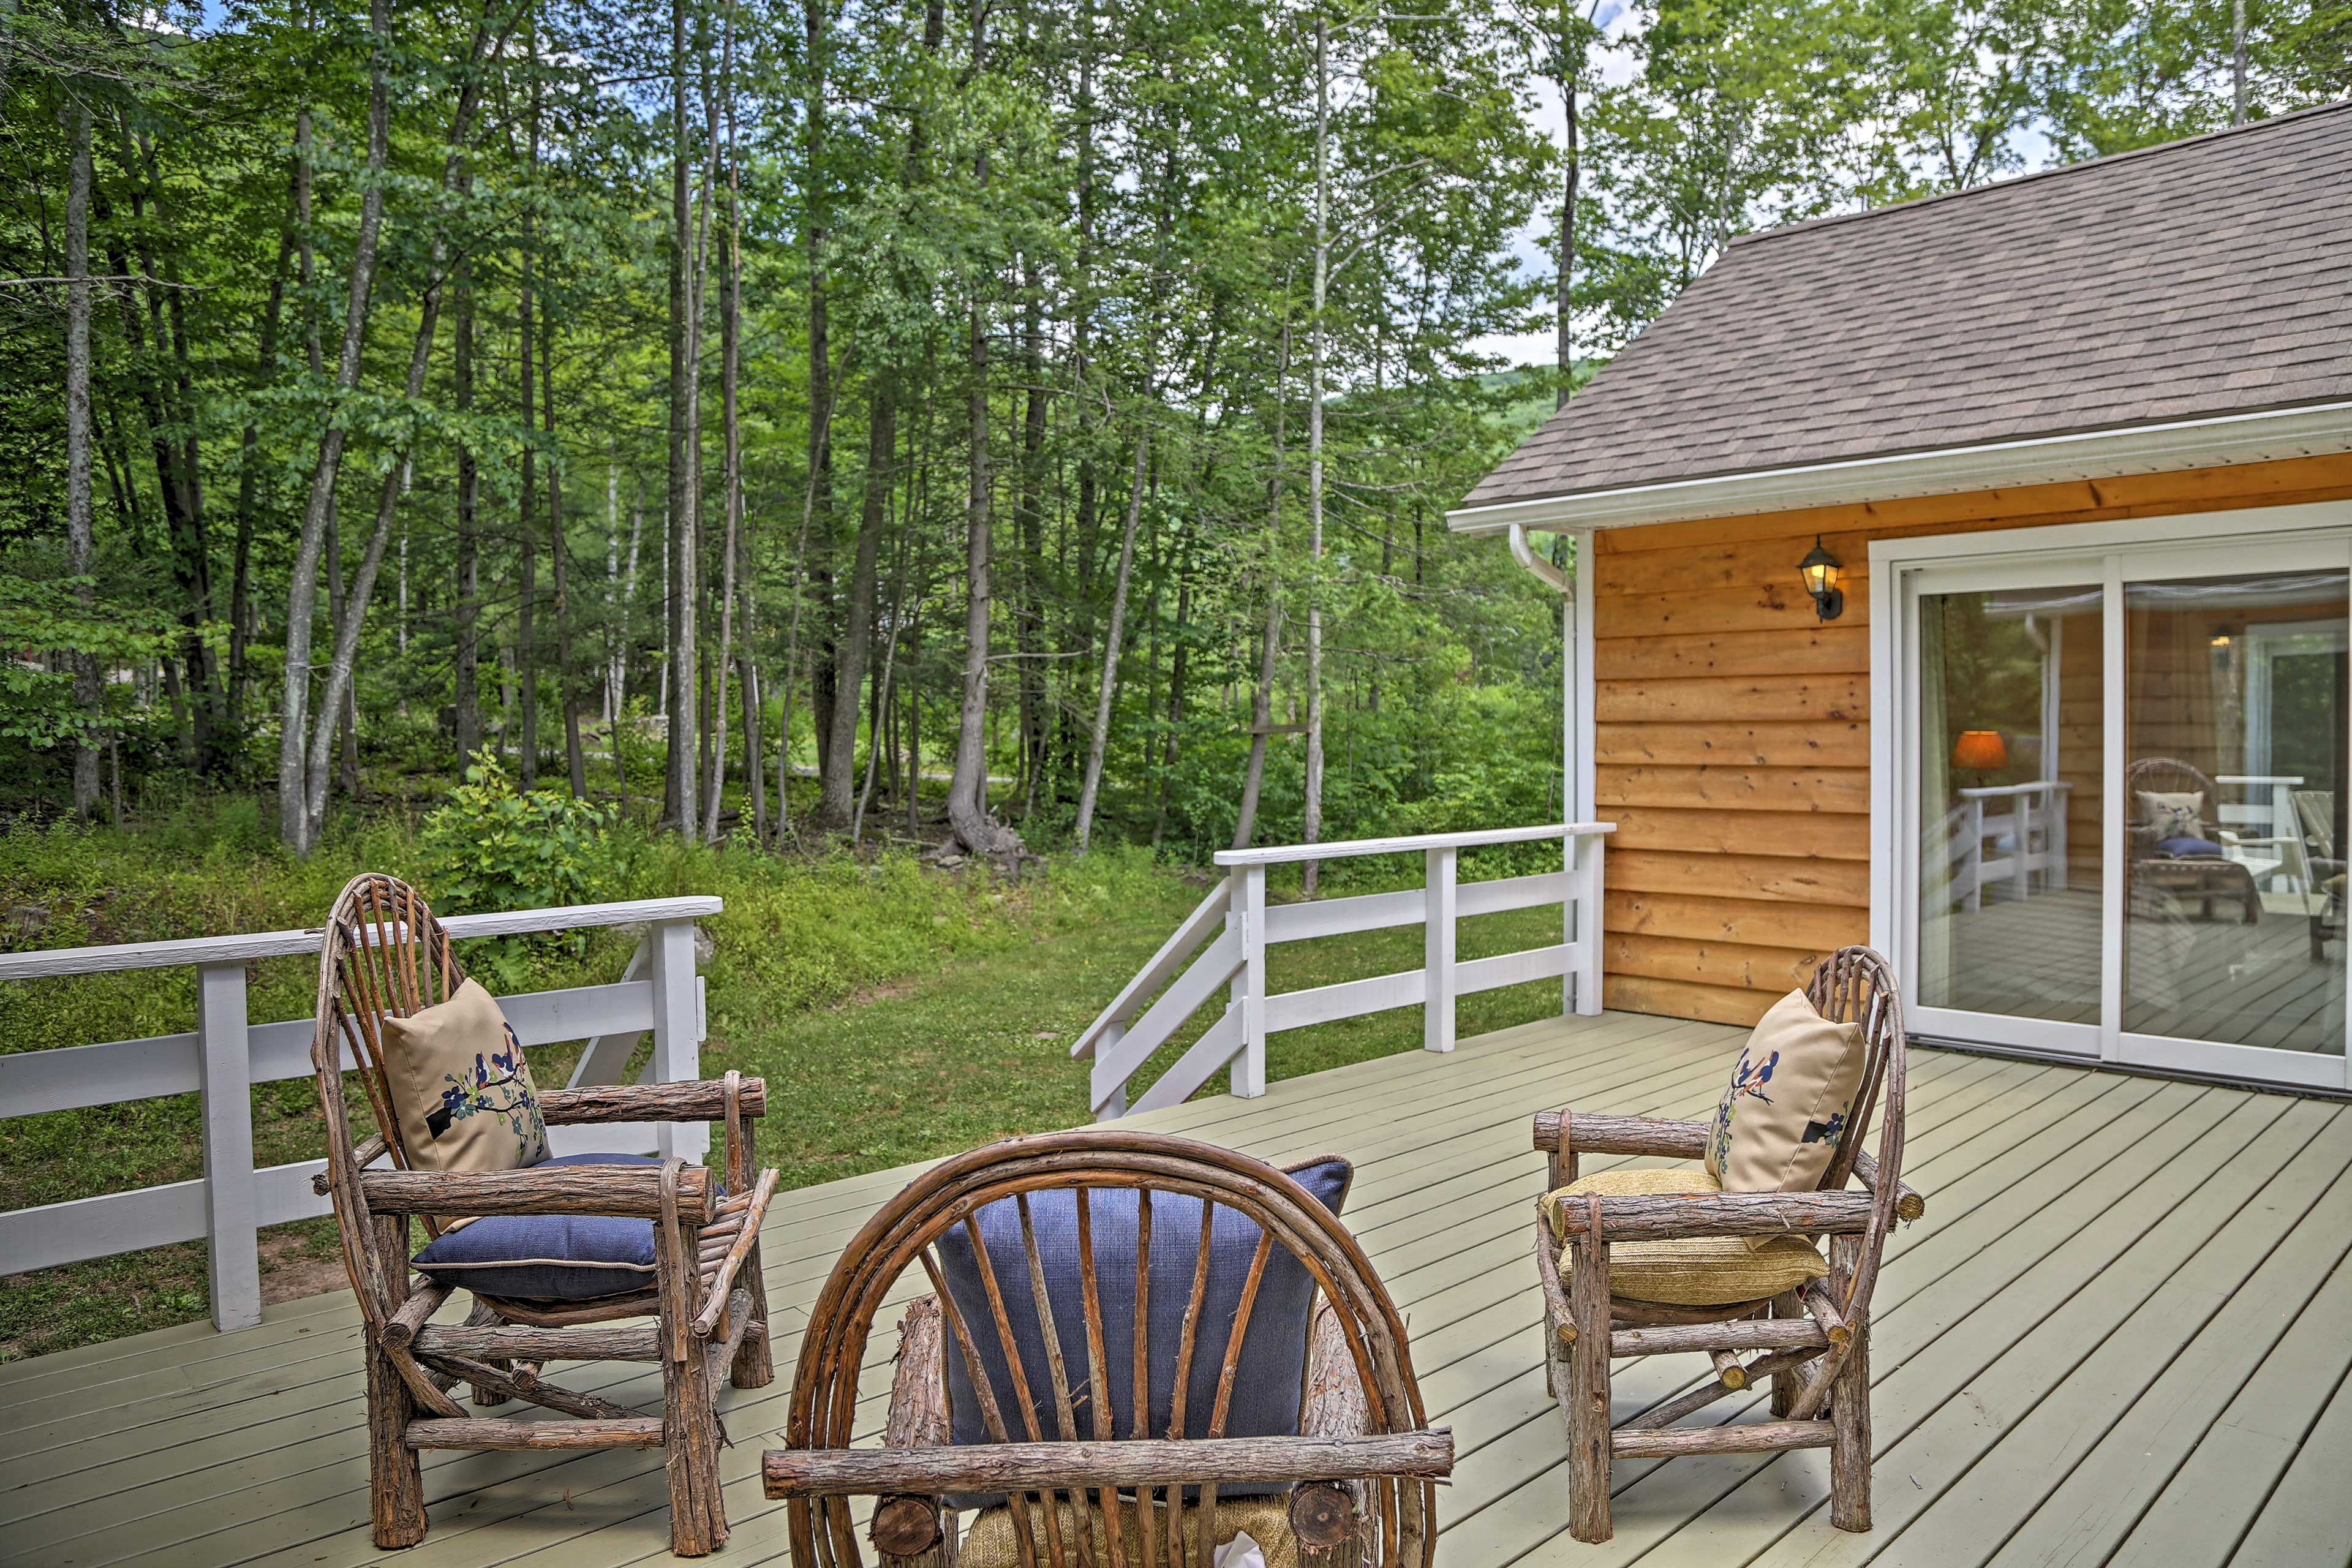 You'll love the away-from-it-all feeling of this nature oasis.